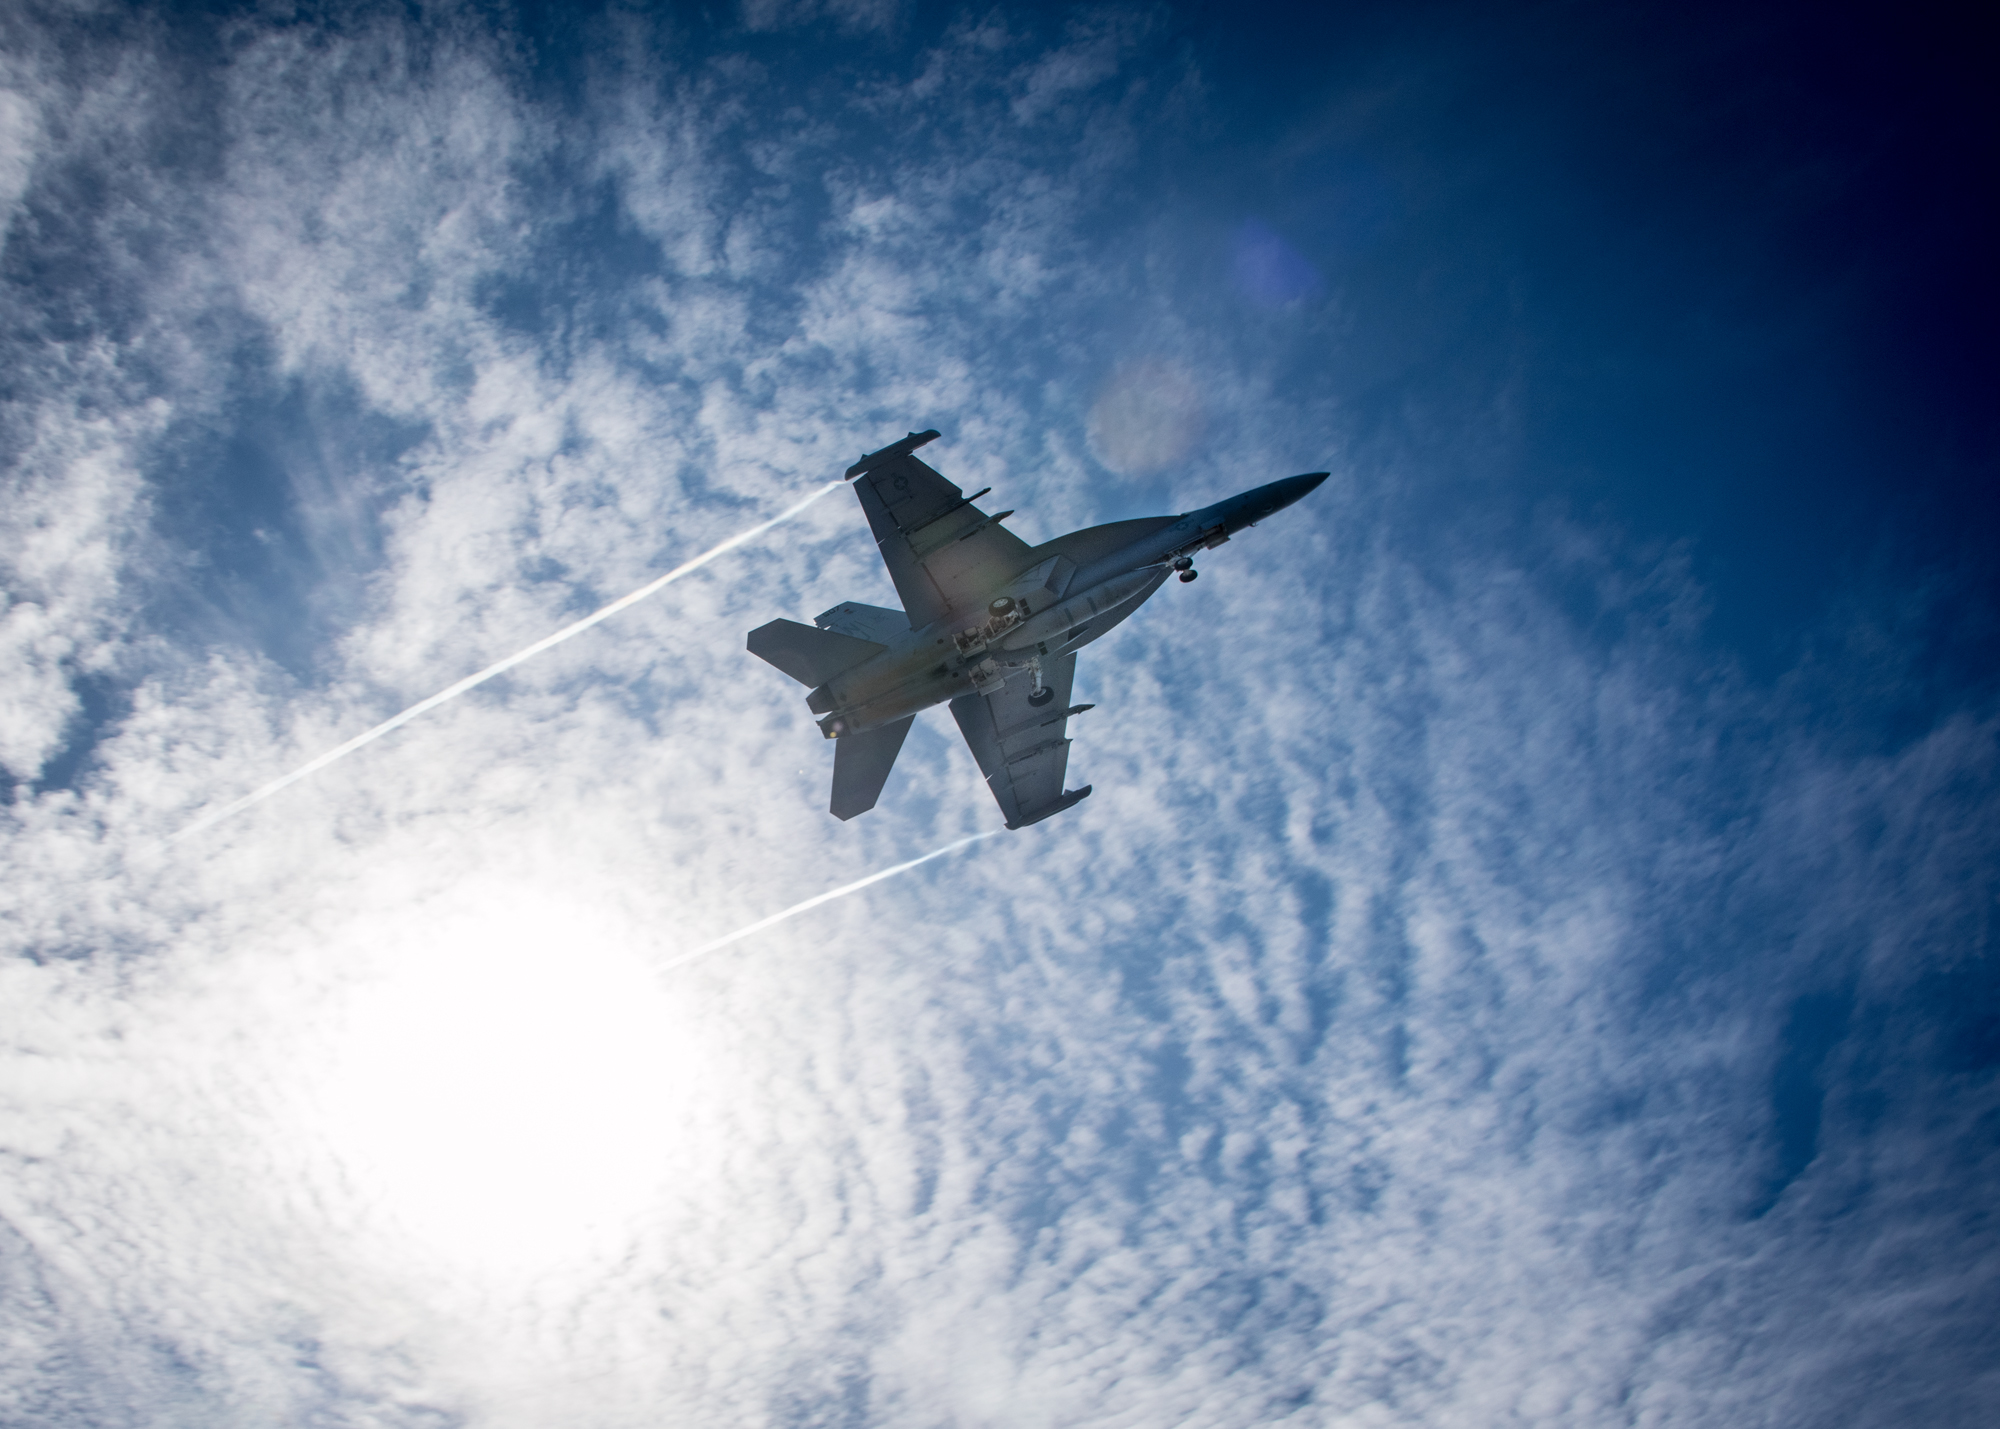 Flying blind and freezing: Navy investigating terrifying EA-18G Growler flight